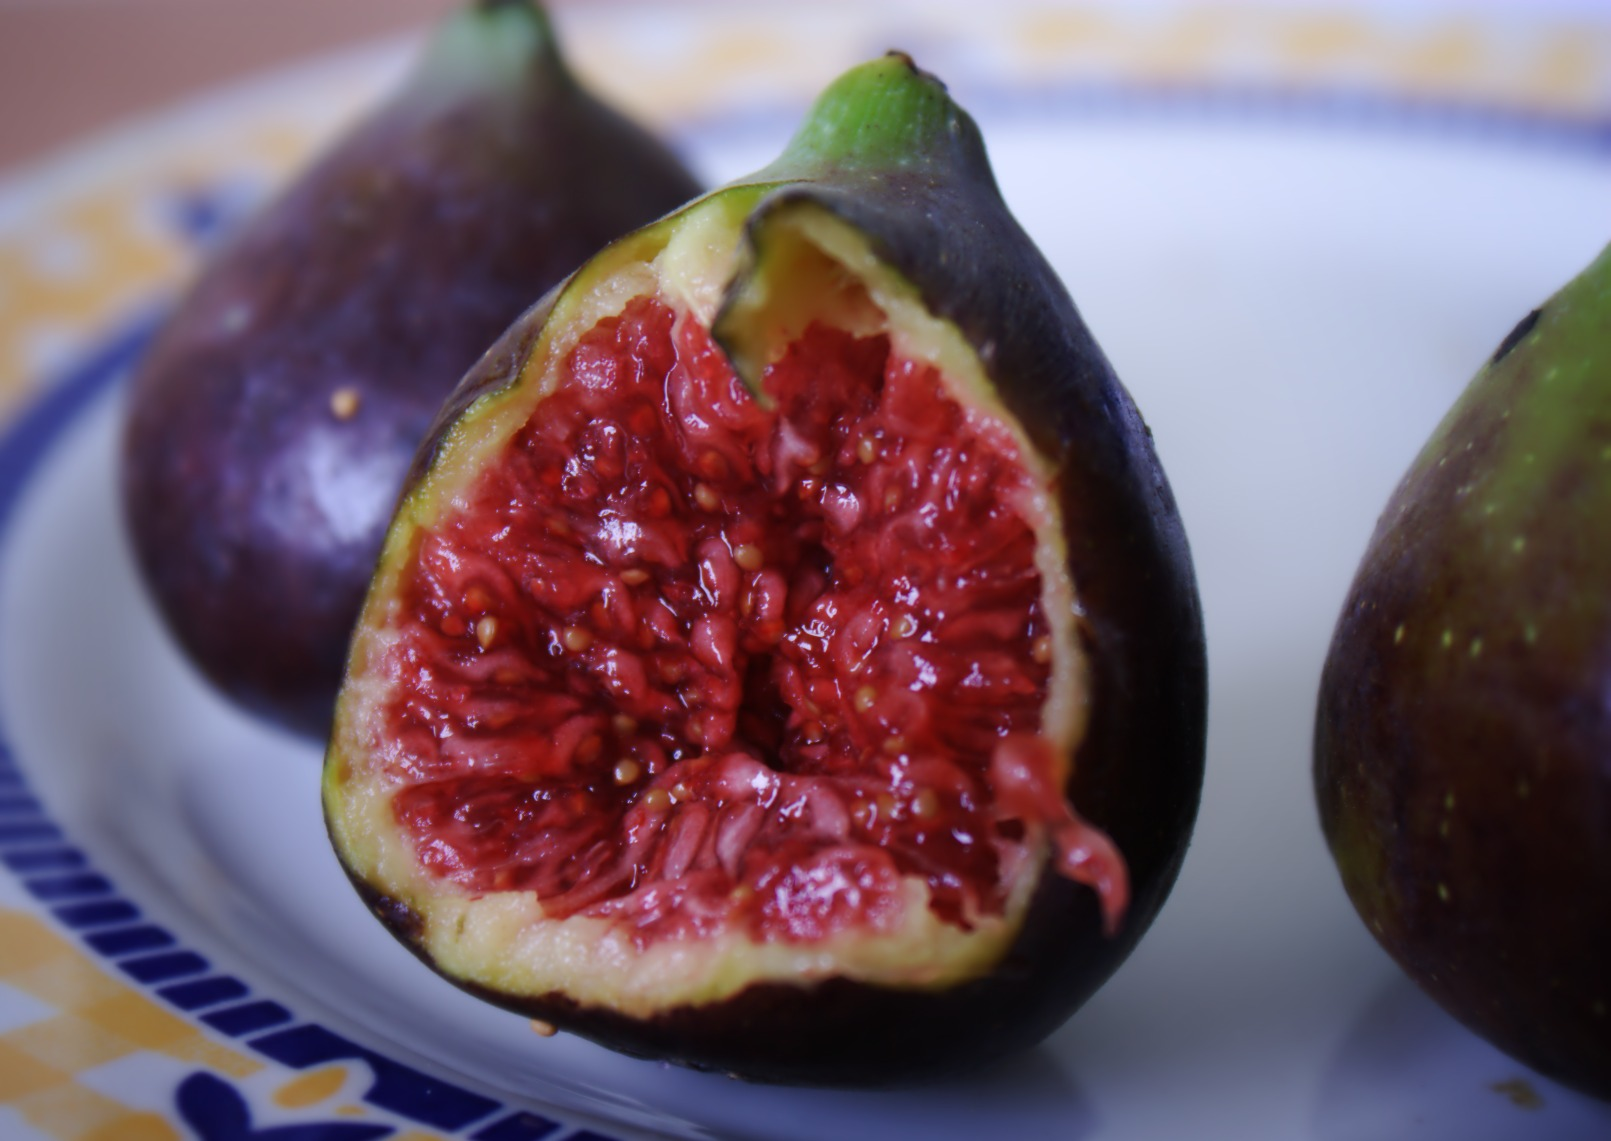 Satisfy your sweet tooth with Figs